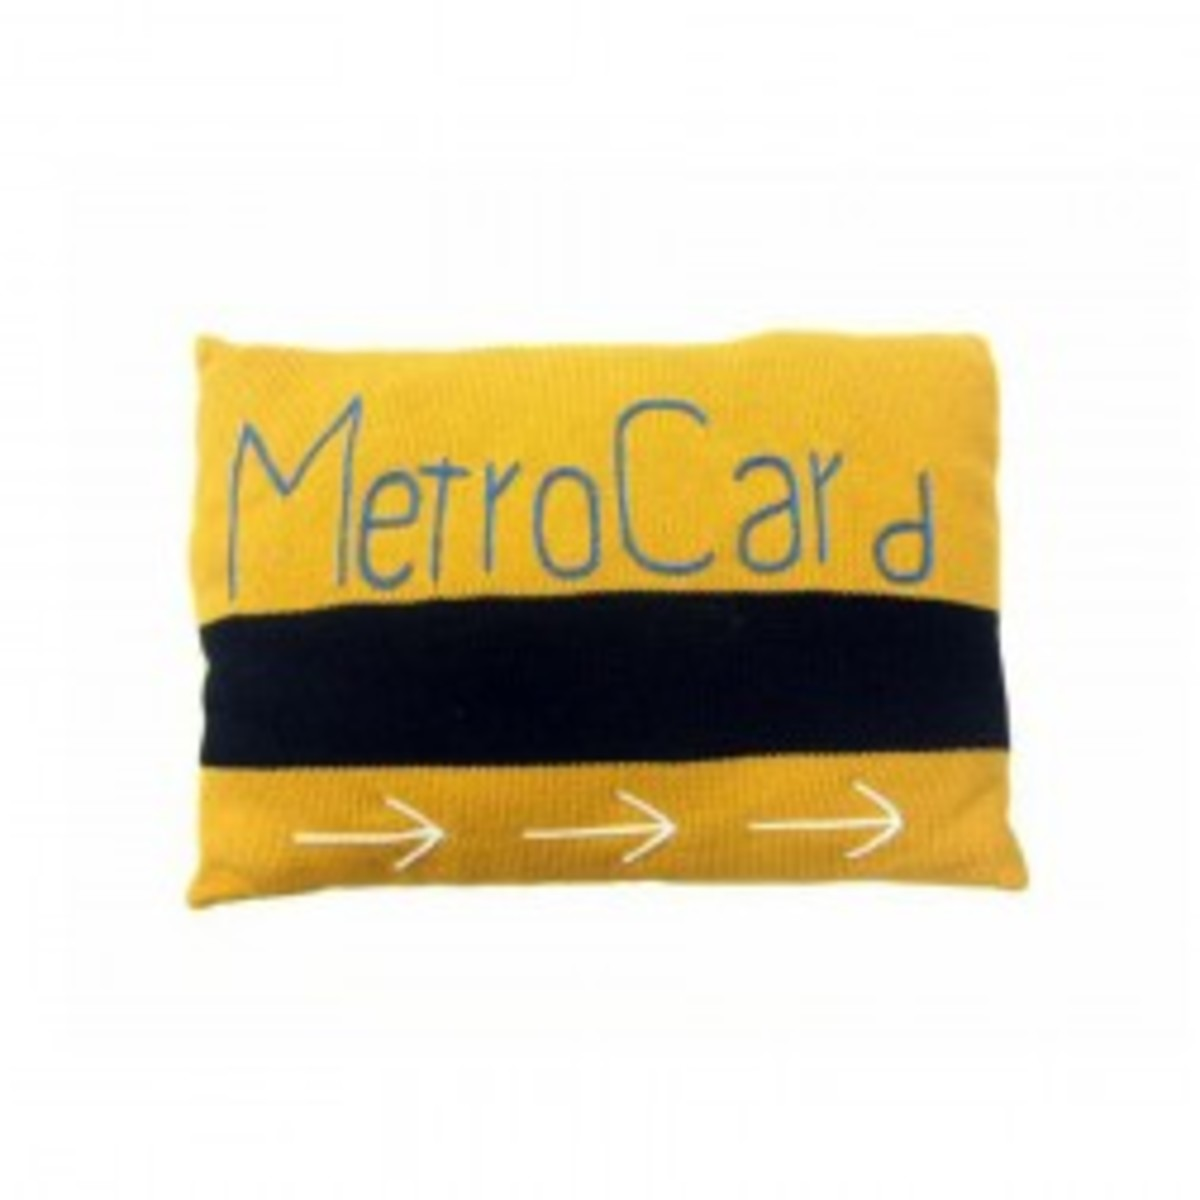 nursery-decor-pillows-estella-metrocard-pillow